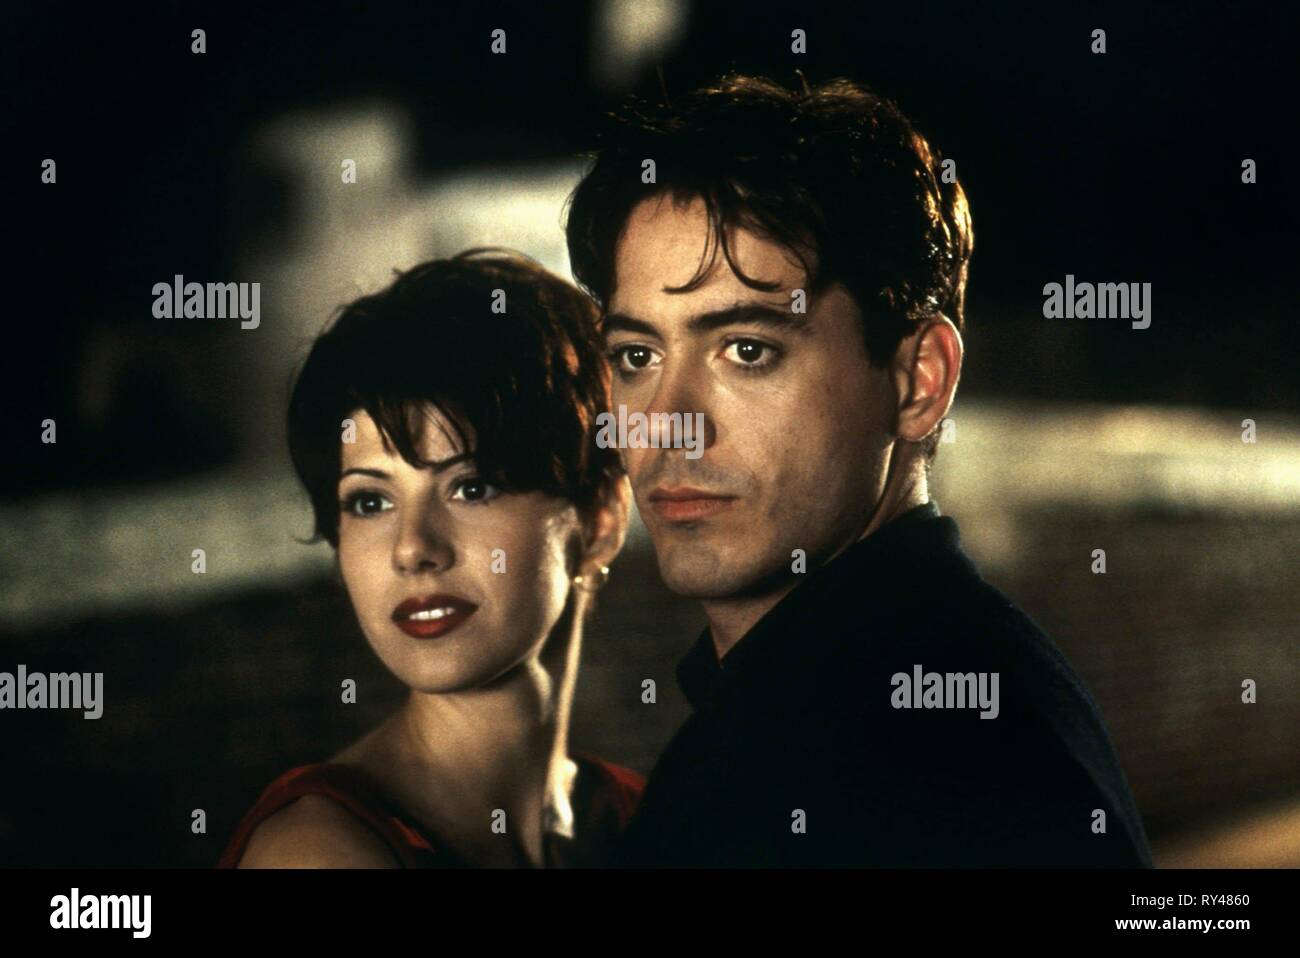 JR,TOMEI, ONLY YOU, 1994 - Stock Image